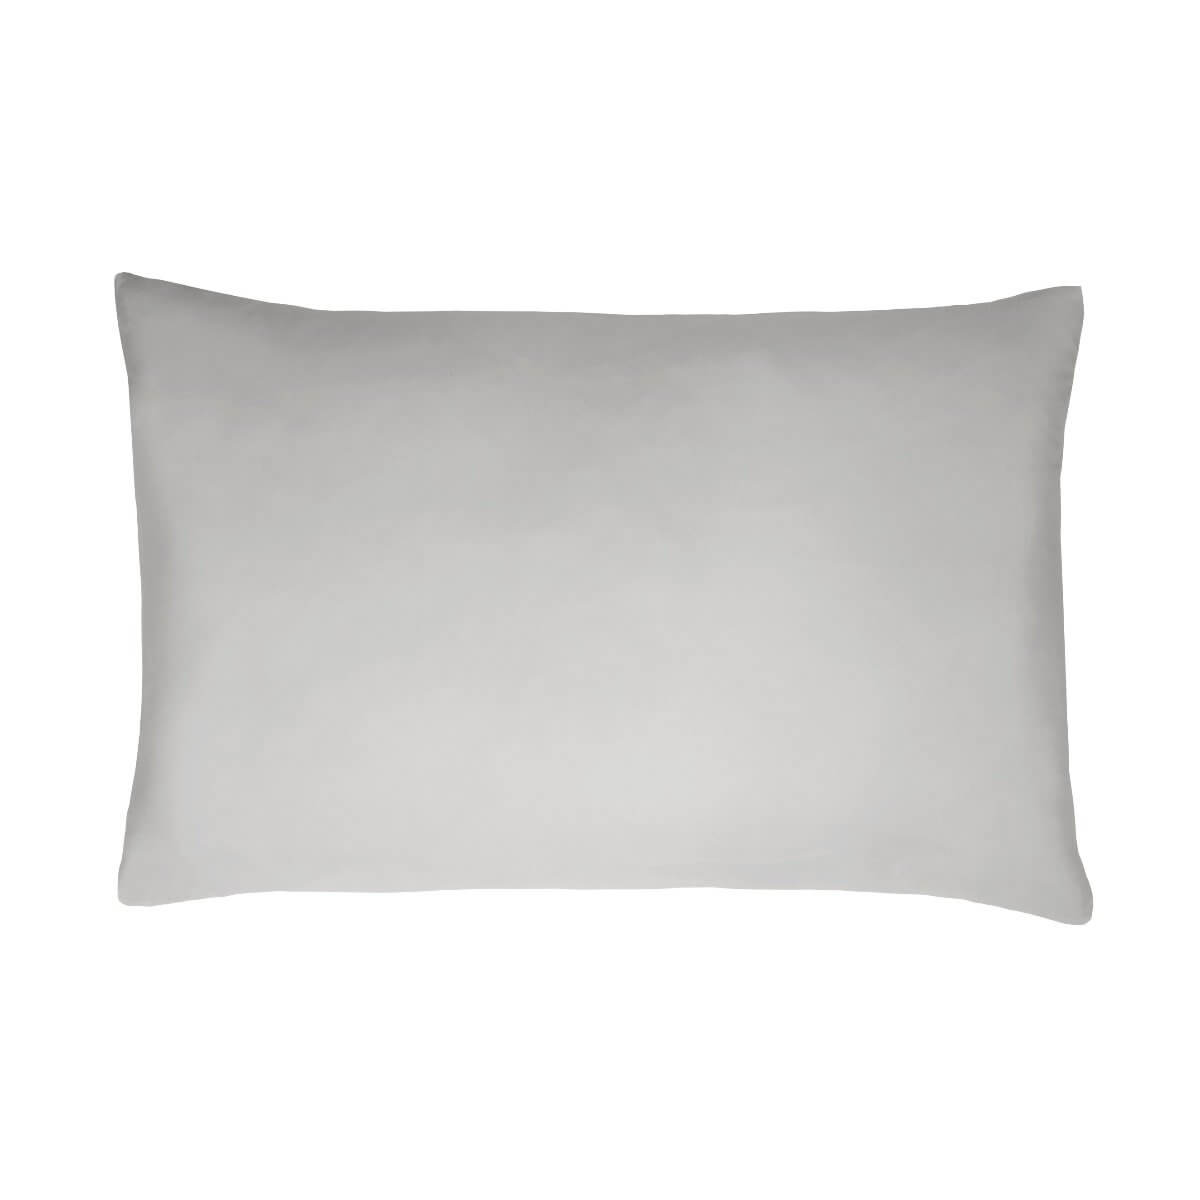 Sleepdown Pillowcase 100% Cotton Sateen Pack of Two Housewife Pillow Cover Set Anti-Allergy 300 Thread Count Luxury Bed Linen - Silver - 50 x 75cm